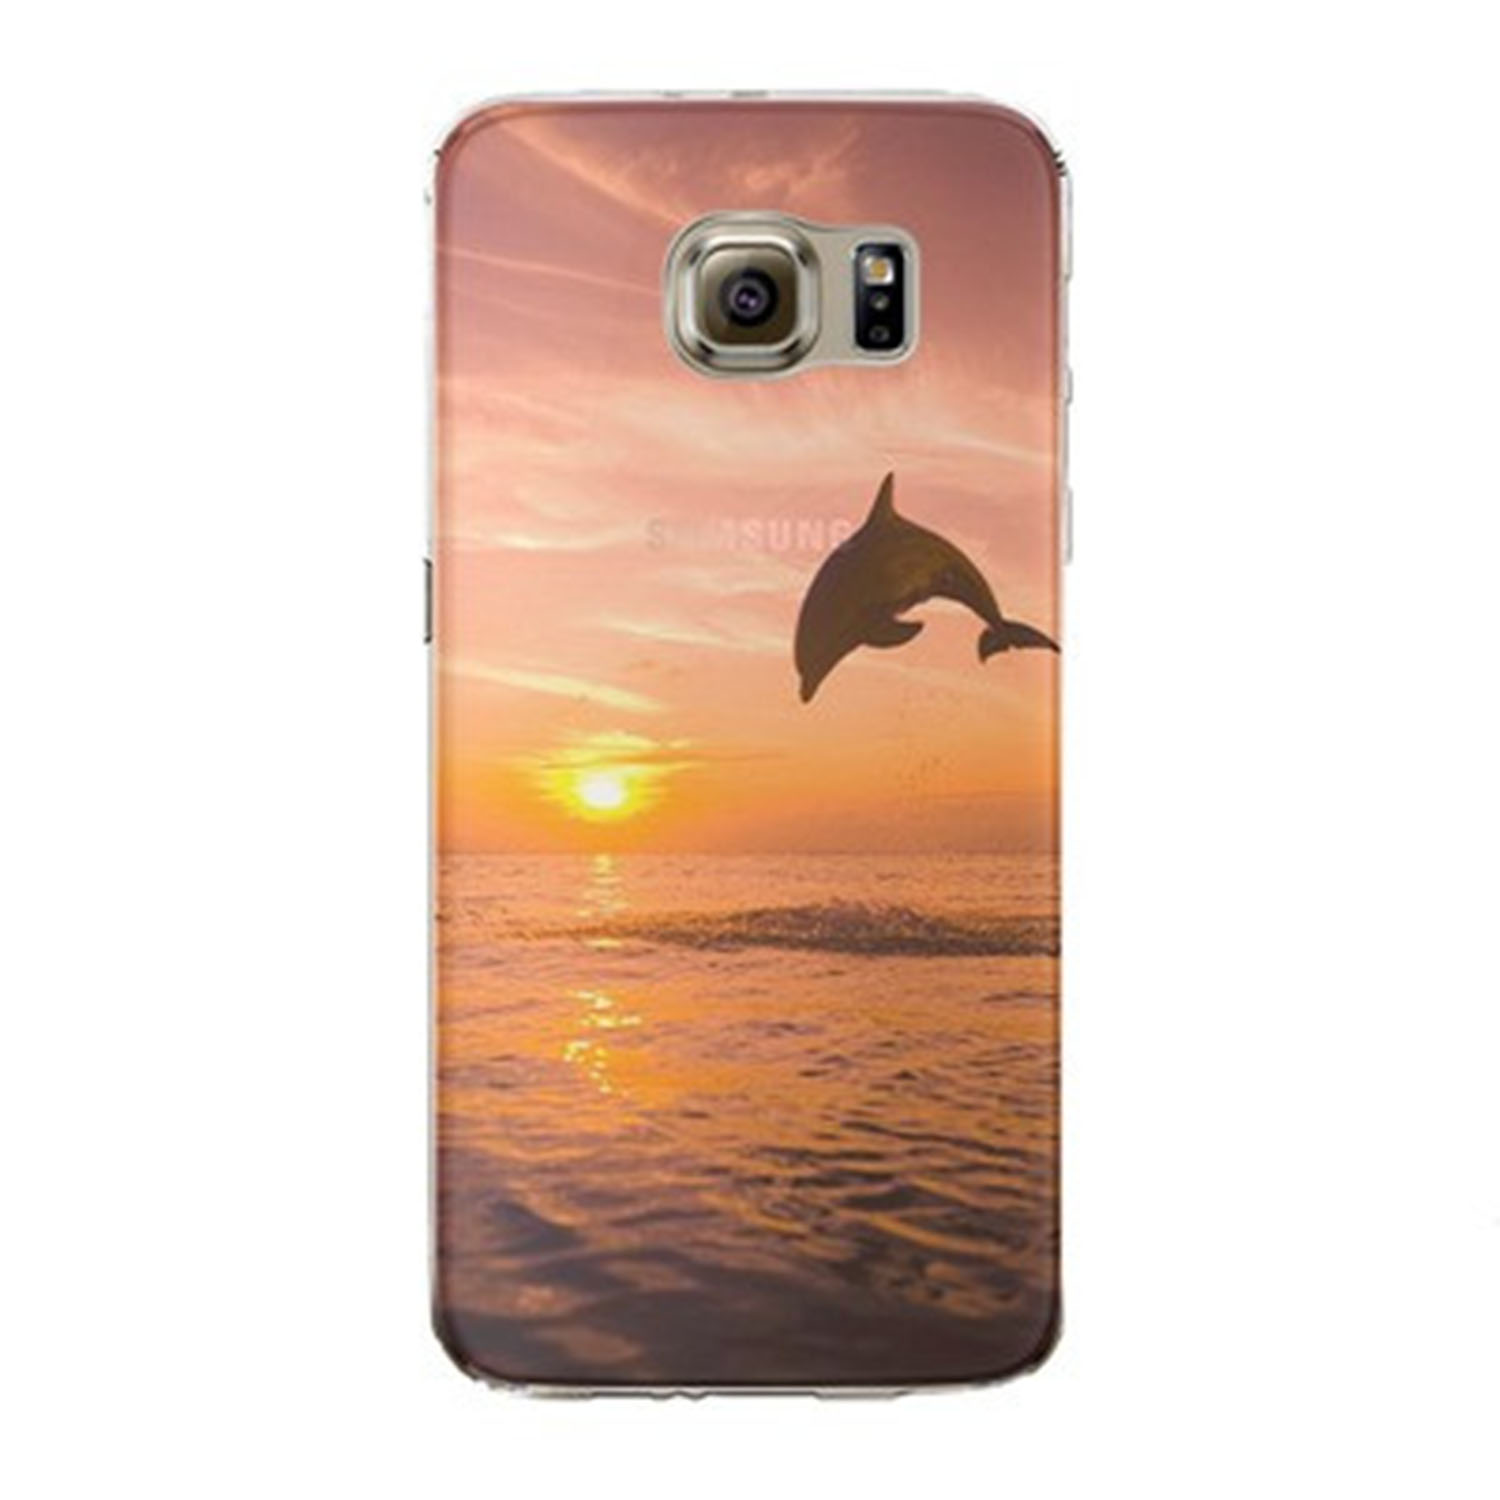 Kritzel Case Collection Galaxy S7 edge - Nature #304